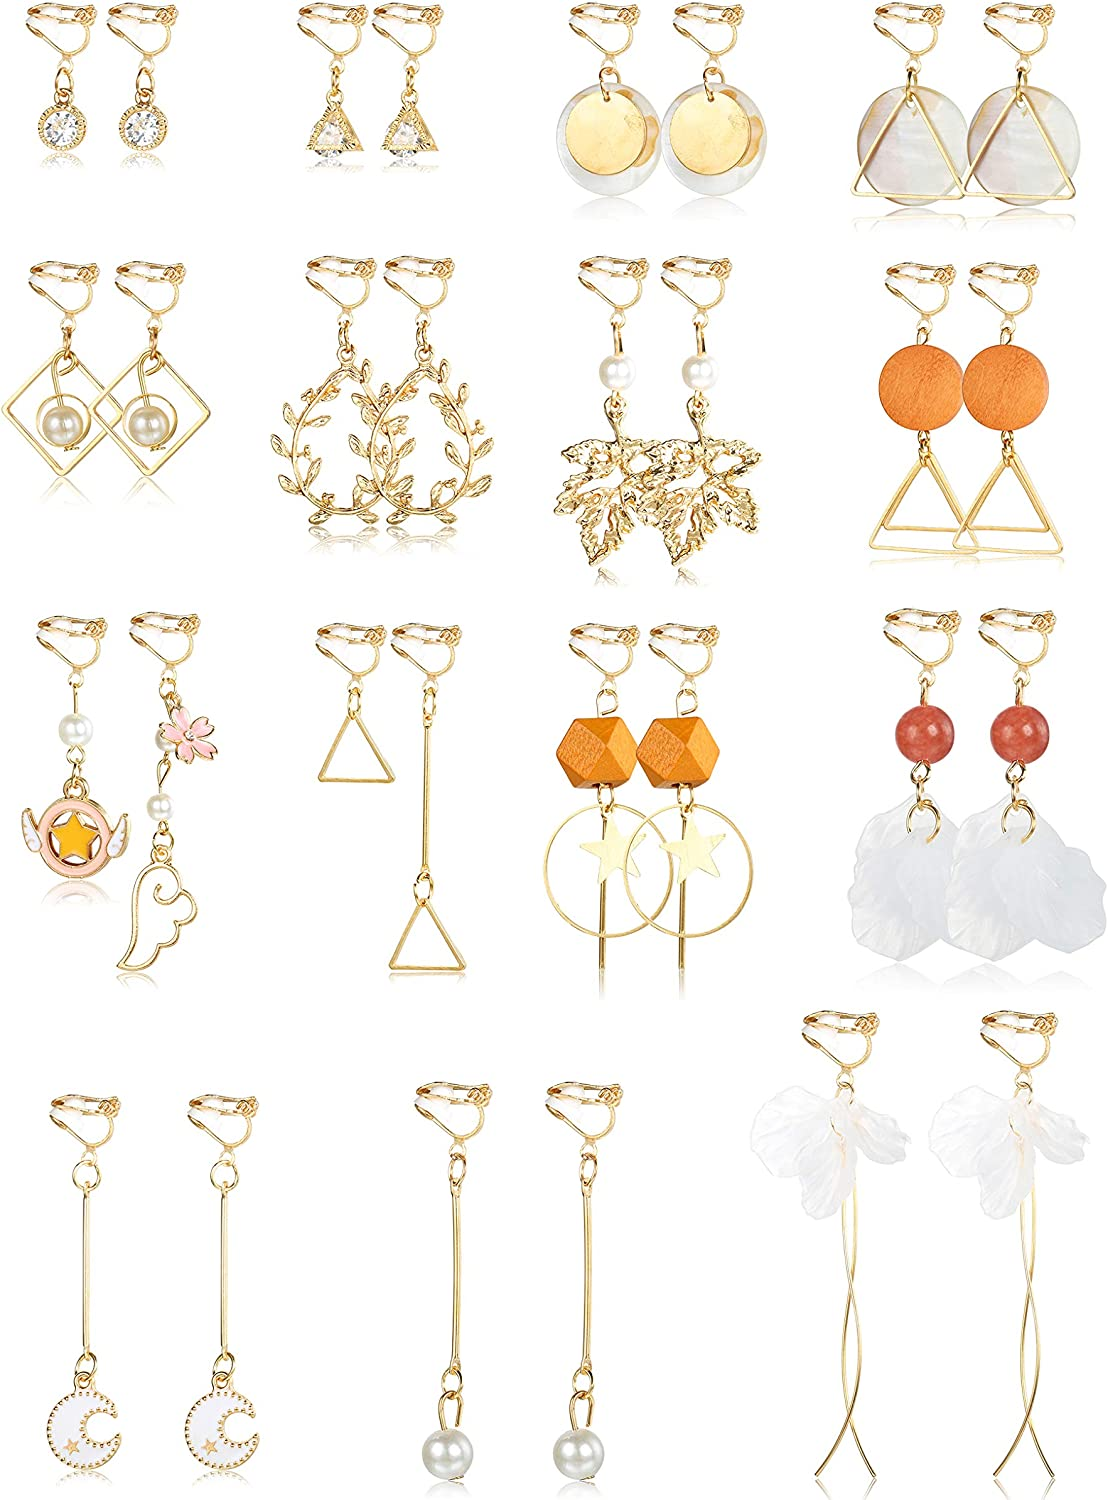 SAILIMUE 15 Pairs Clip on Cash High quality new special price Earrings for Moon Folwer Dangle Women